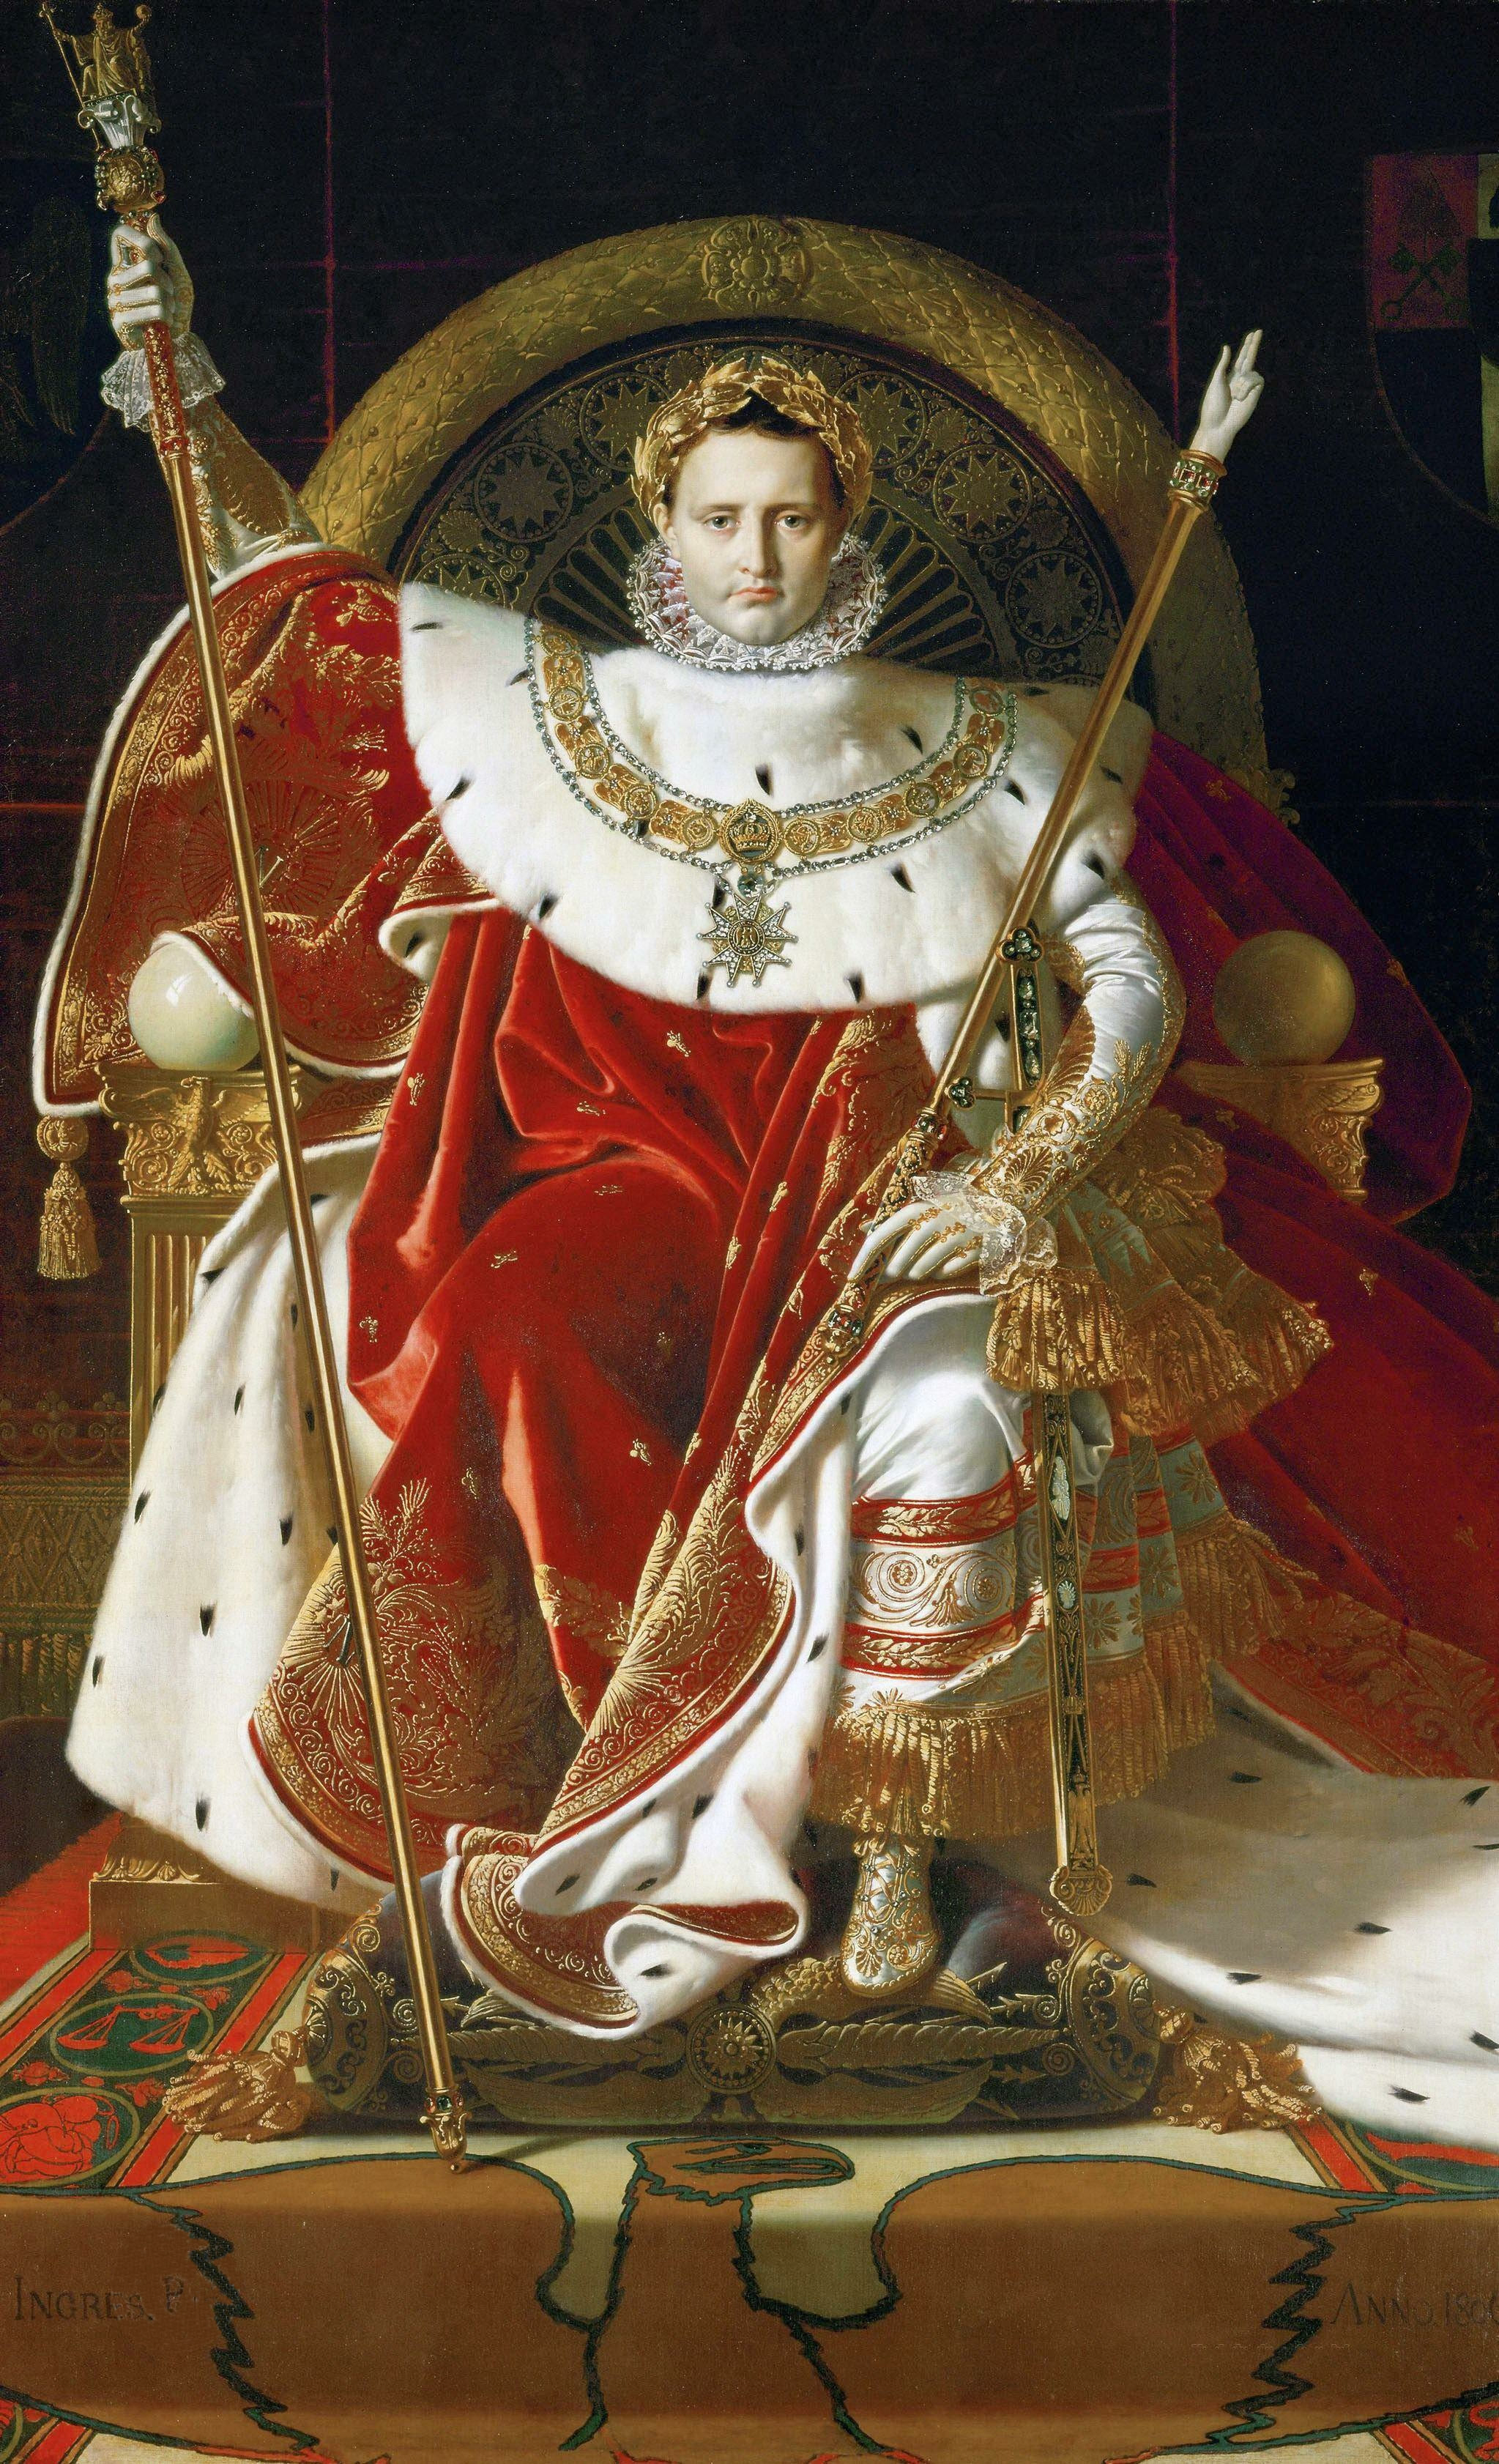 Jean Auguste Dominique Ingres: Napoleon on his Imperial throne